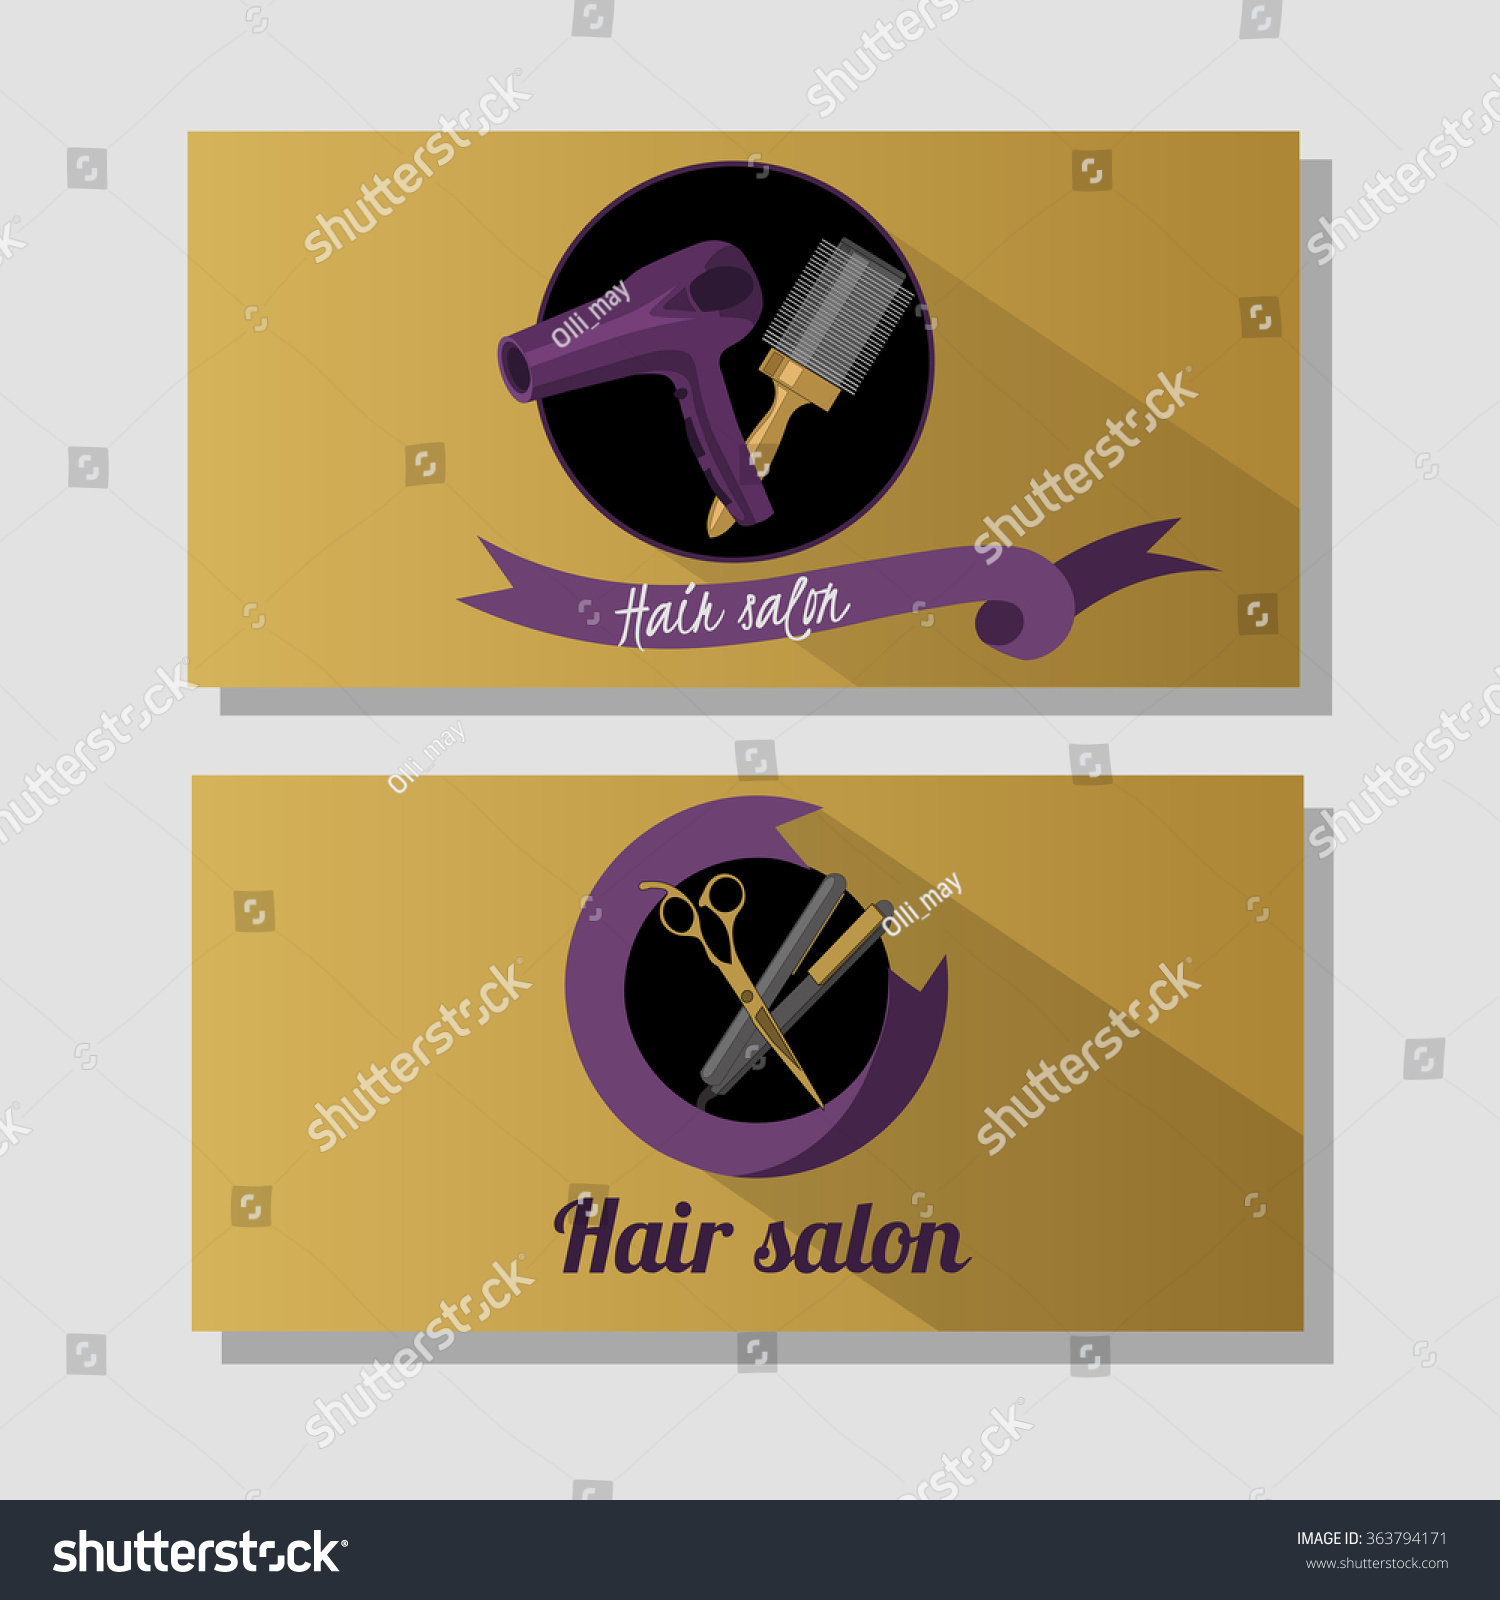 Hair Salon Business Card Design Concept Stock Vector 363794171 ...